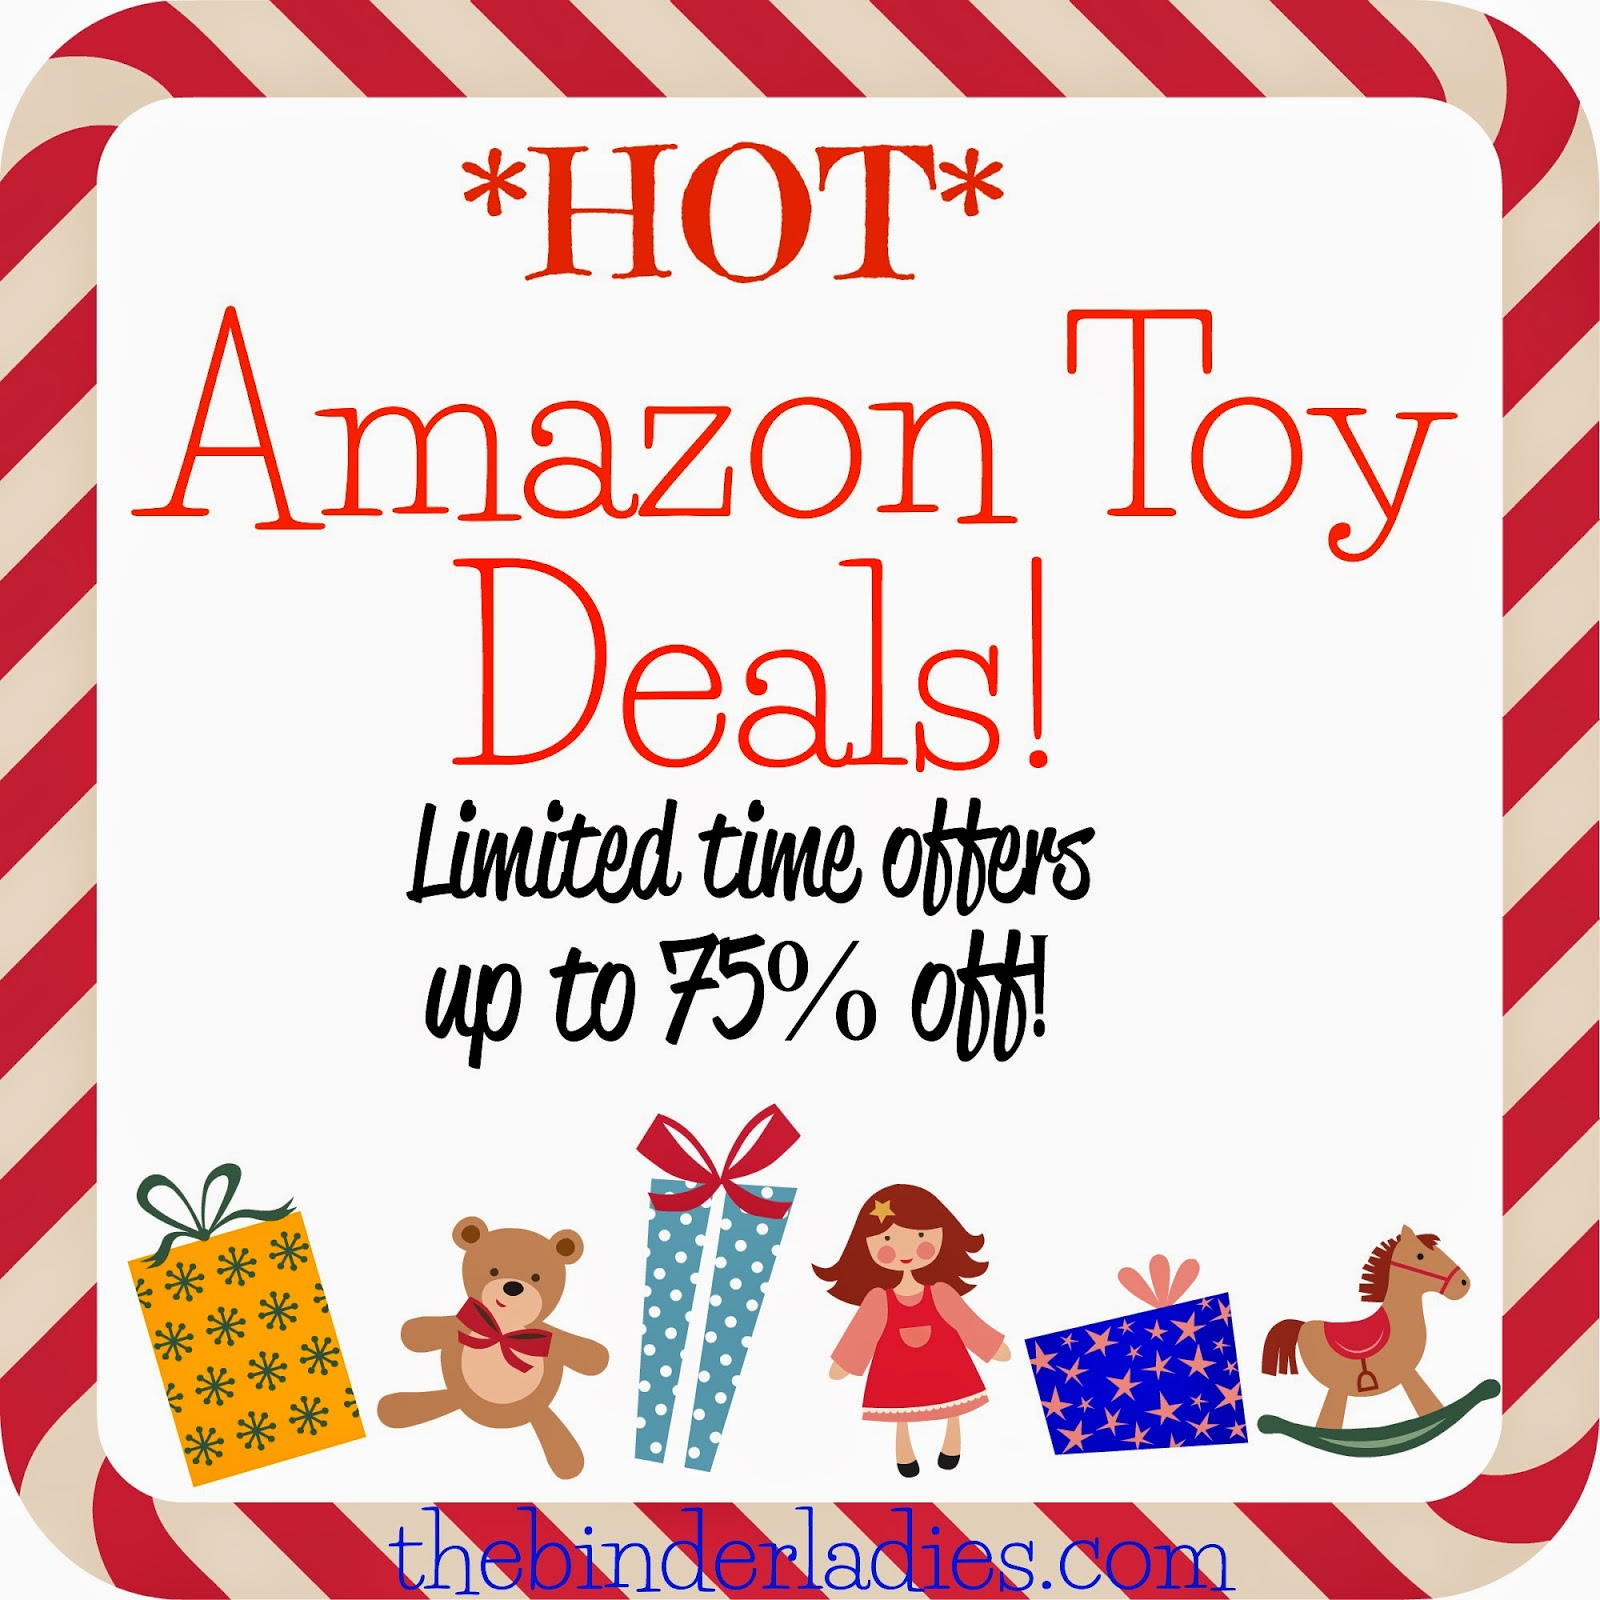 http://www.thebinderladies.com/2014/12/hot-amazon-awesome-toy-deals-save-on.html#.VI-9qIfduyM